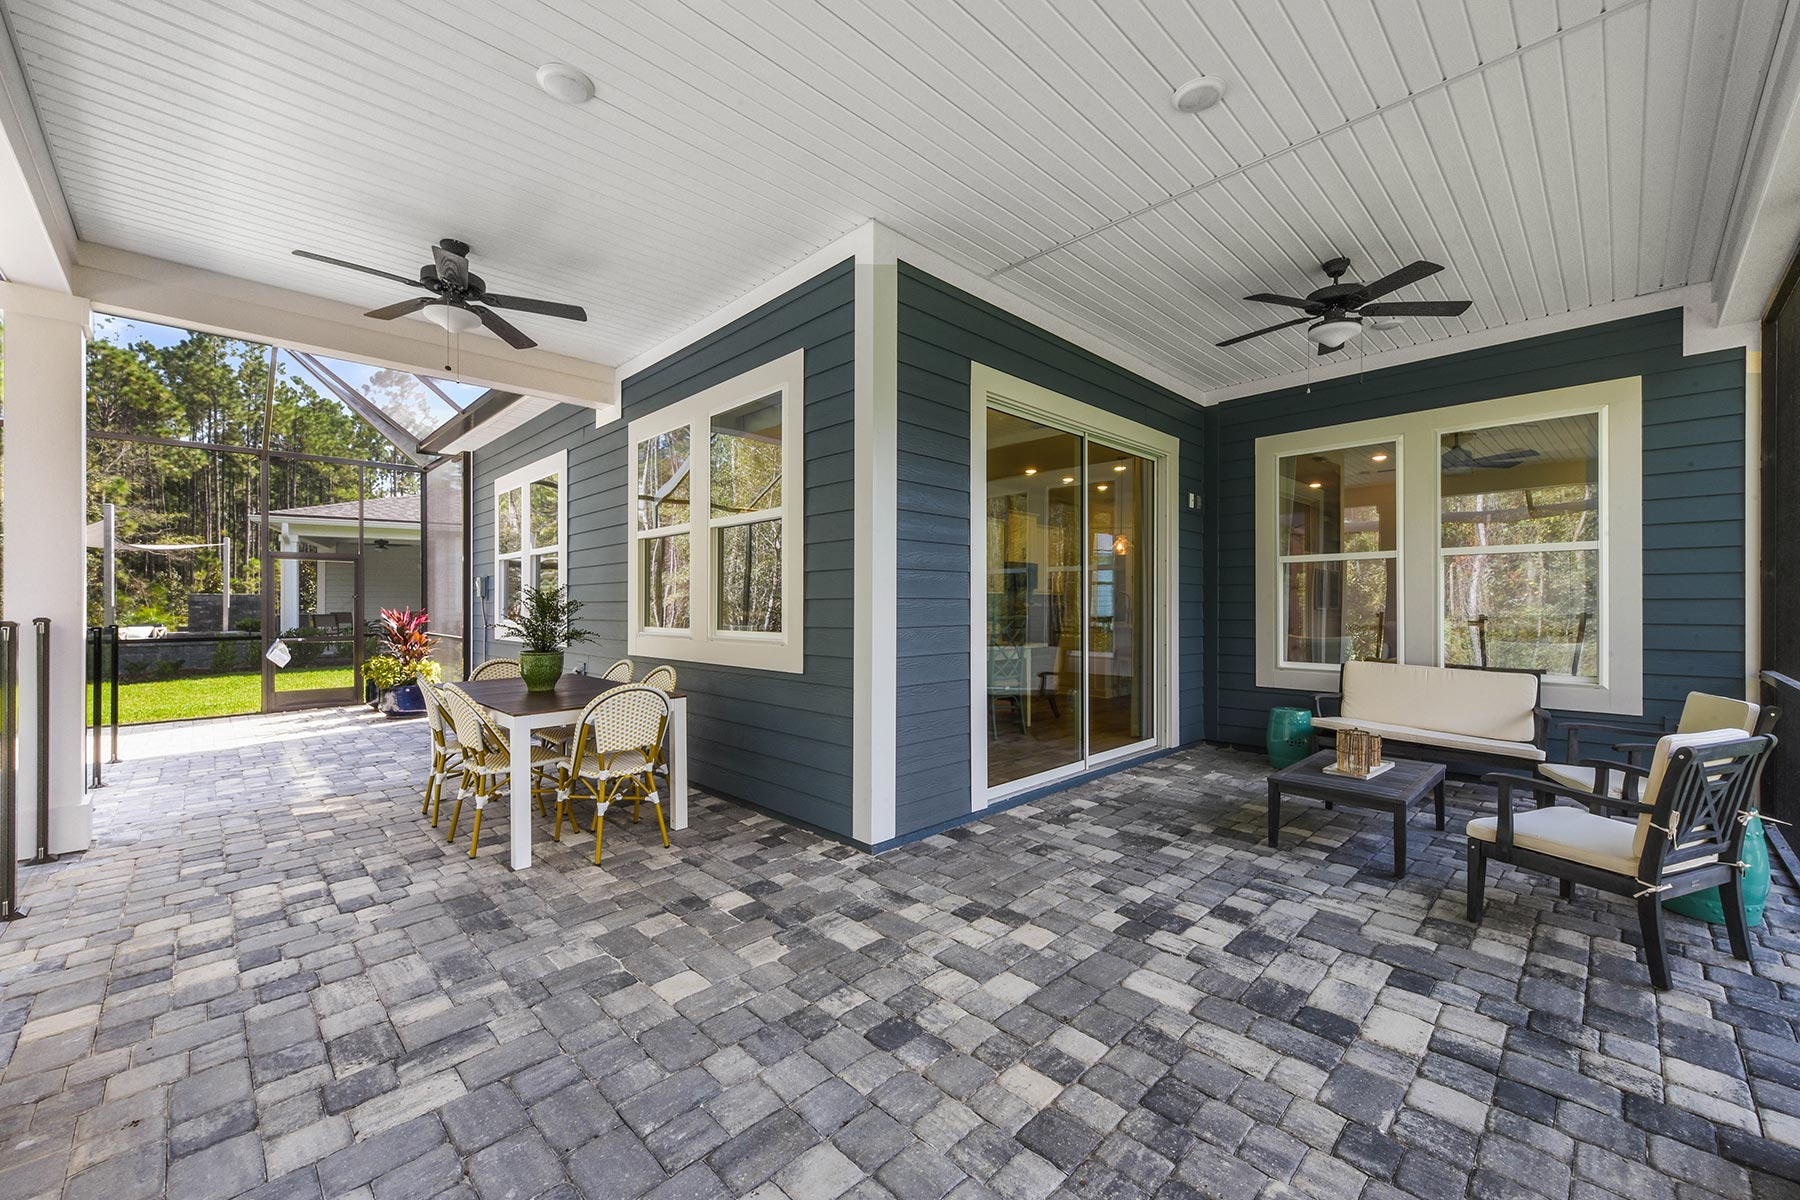 Court Plan Patio at RiverTown - WaterSong in St. Johns Florida by Mattamy Homes